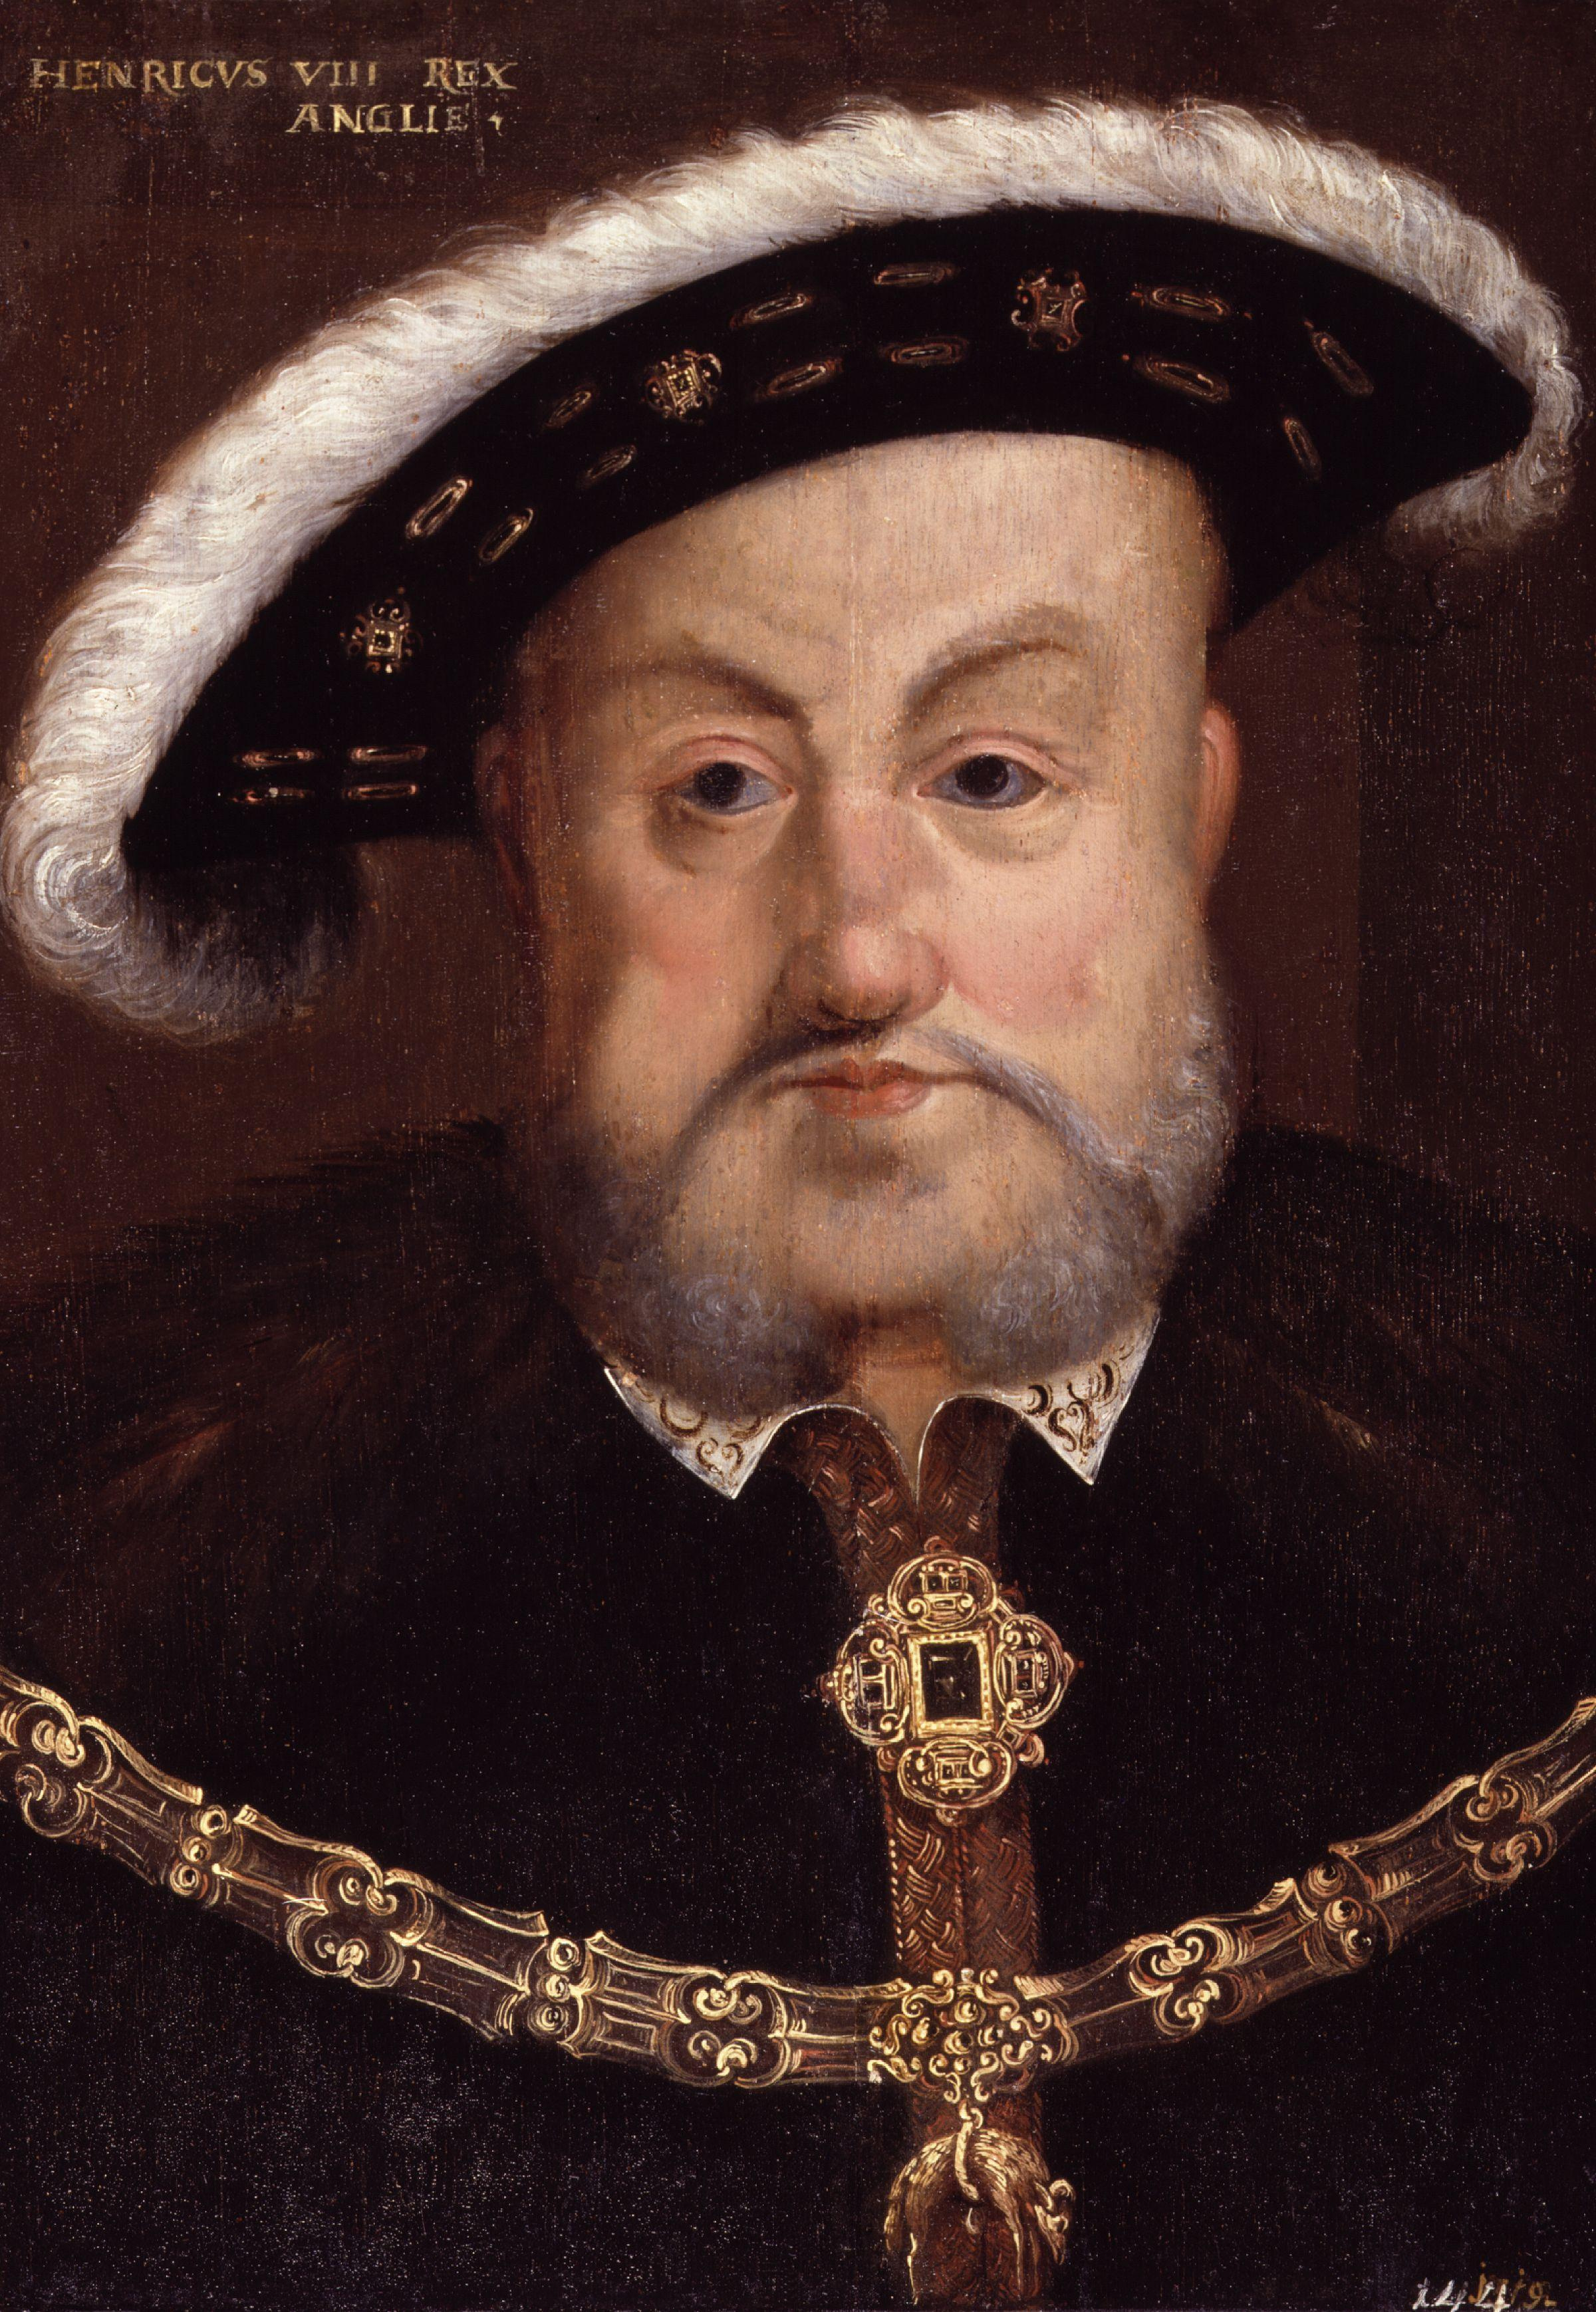 henry the viii Henry viii was king of england from 1509 to 1547 he is probably most well-known for having six wives and for being very over-weight towards the end of his reign, but.